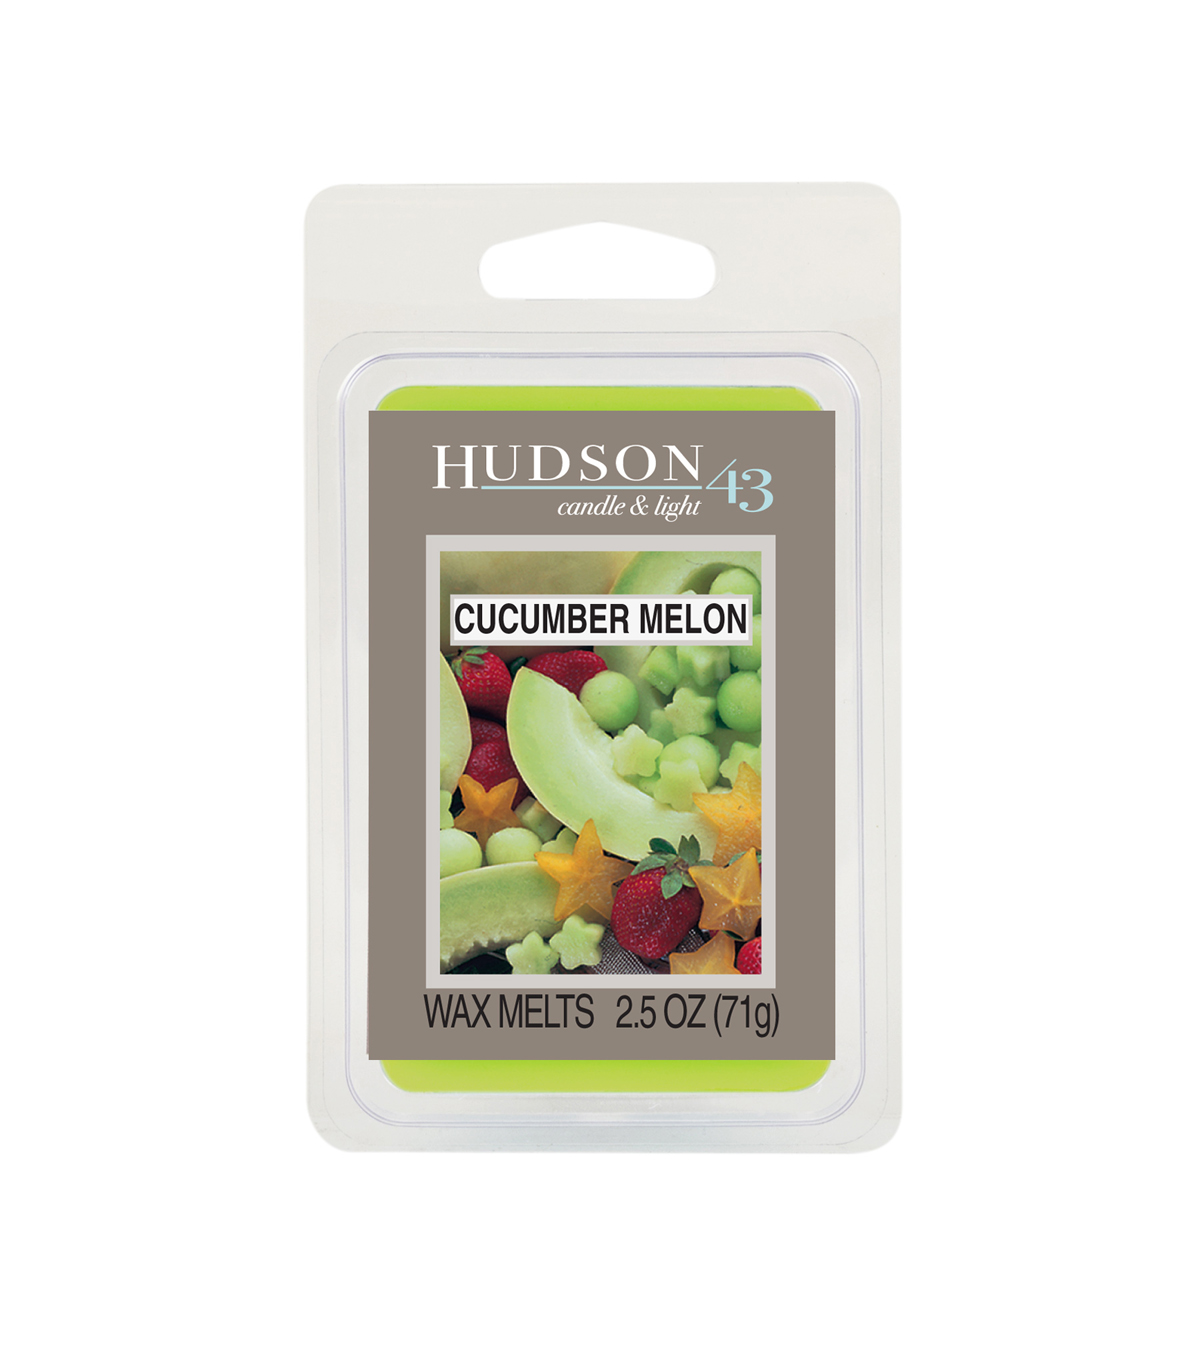 Hudson 43™ Candle & Light Collection Wax Melt-Cucumber Melon